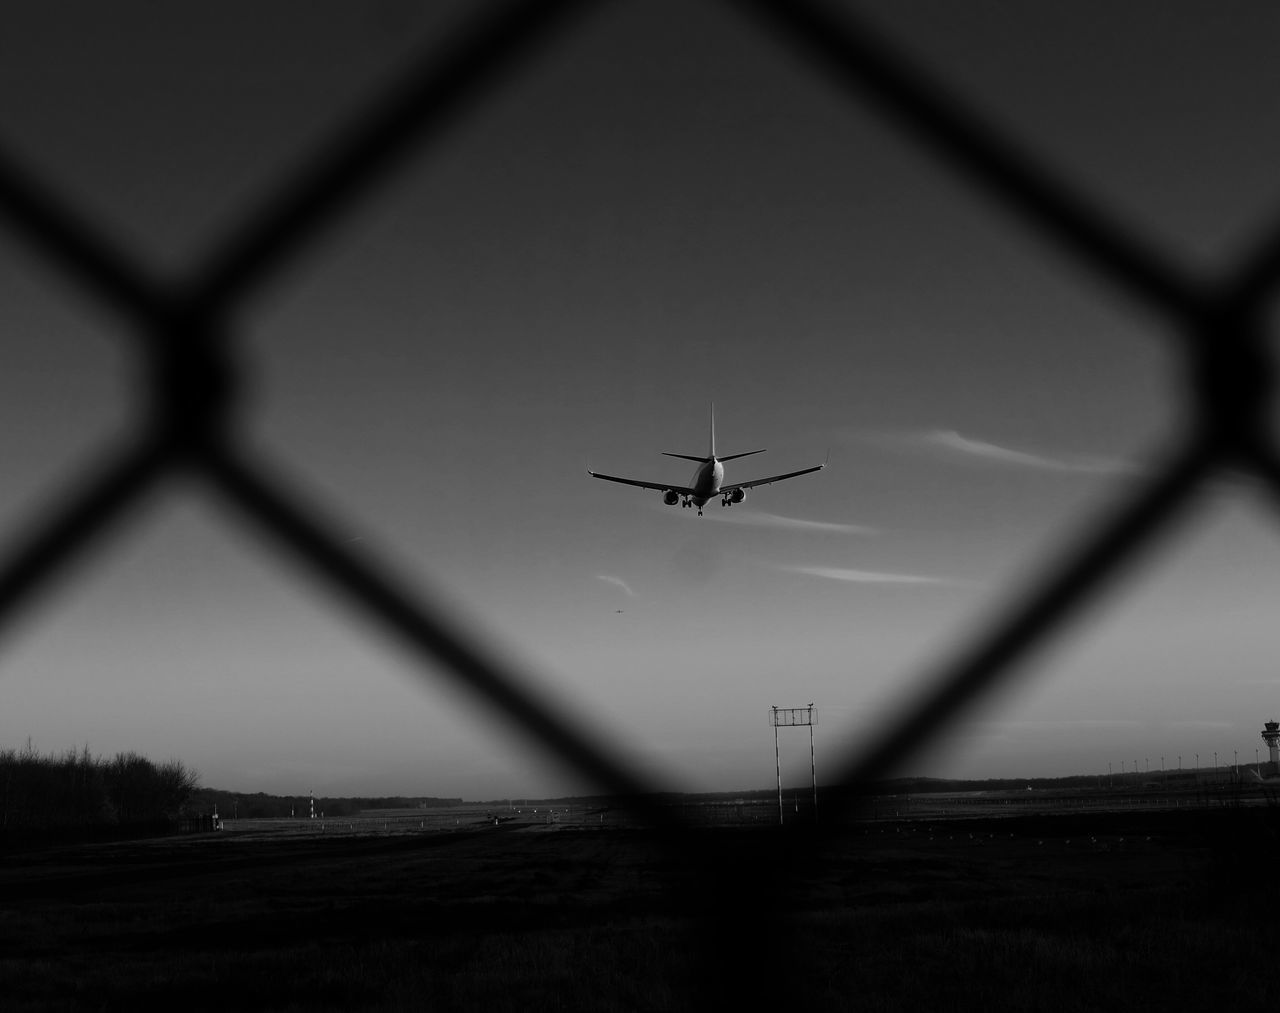 Airplane Flying Transportation Journey Mode Of Transport Photooftheday Photography Air Vehicle No People Sky Mid-air Low Angle View Day Outdoors Runway Nature Germanwings Night Aircraft Blackandwhite Landing - Touching Down EyeEm Best Shots EyeEm Gallery Eye4photography  Fujifilm